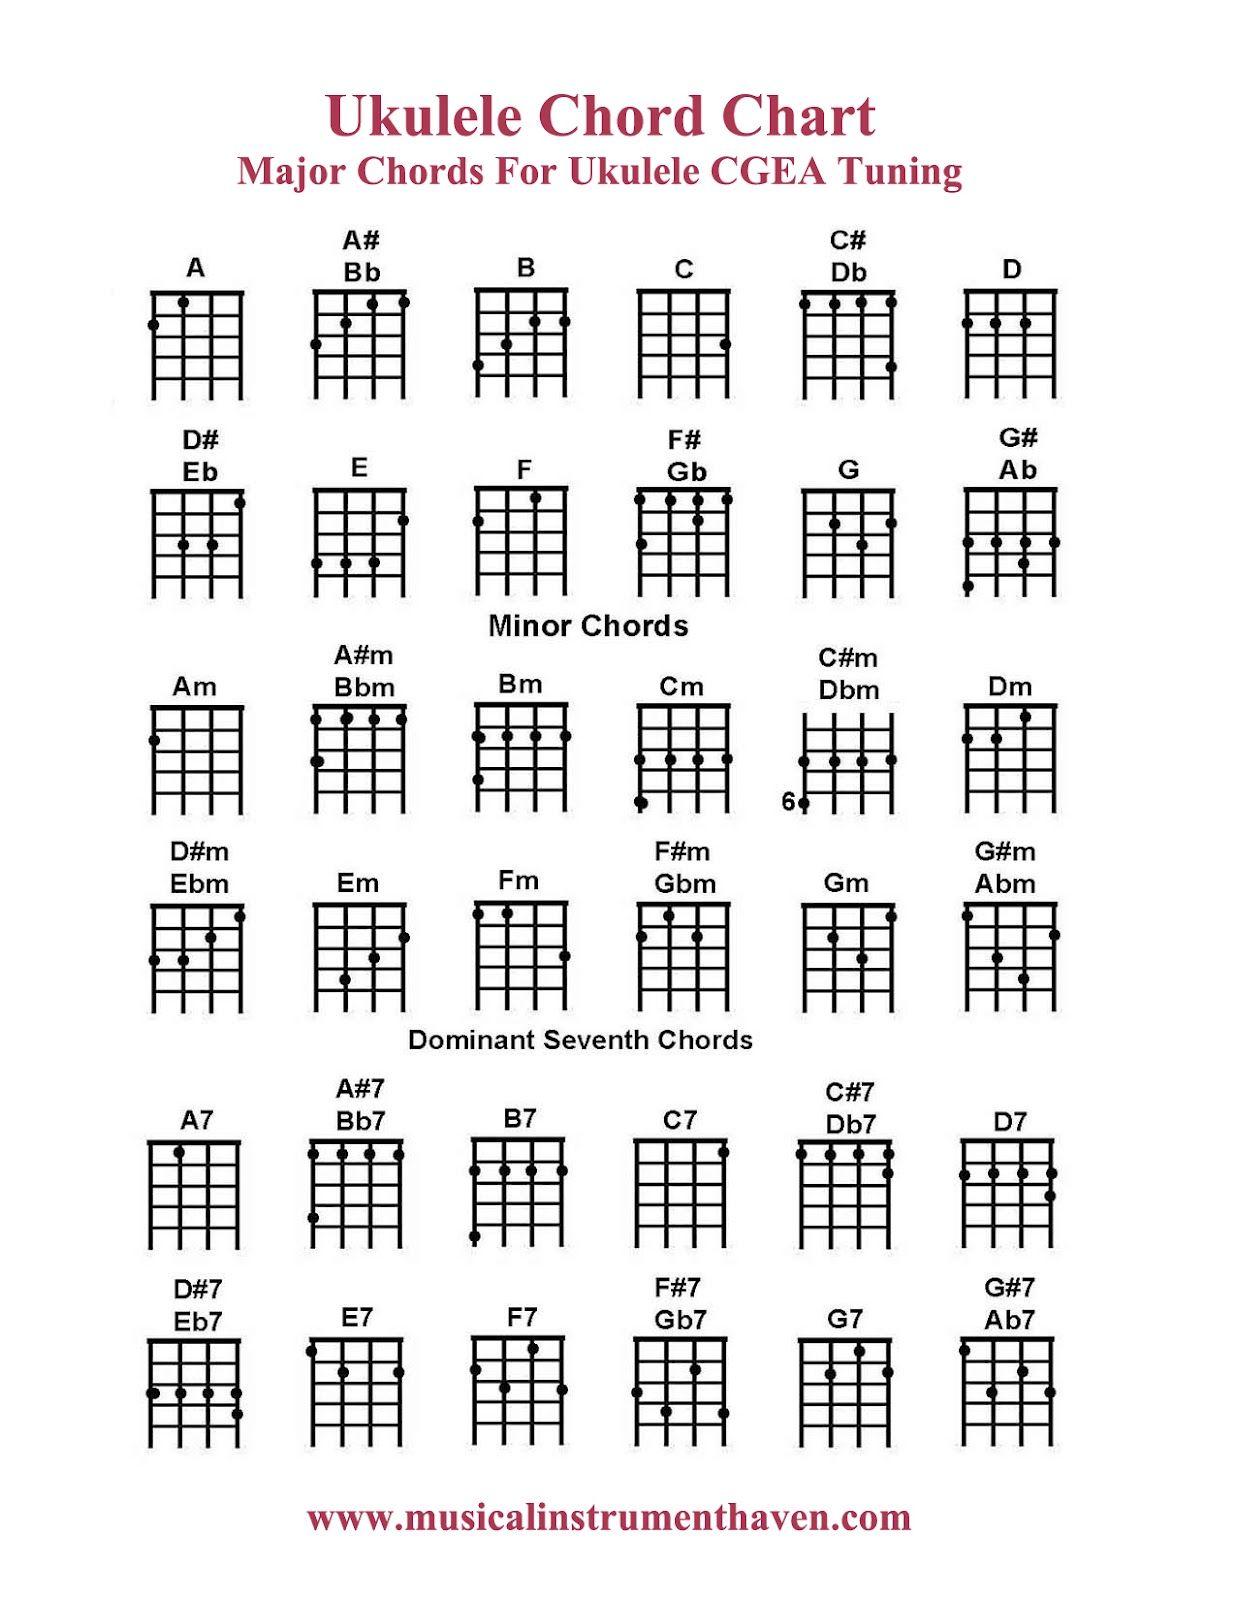 Bukuleleb bchordb chart major bchordsb cgea tuning explore ukulele tabs guitar chords and more hexwebz Image collections